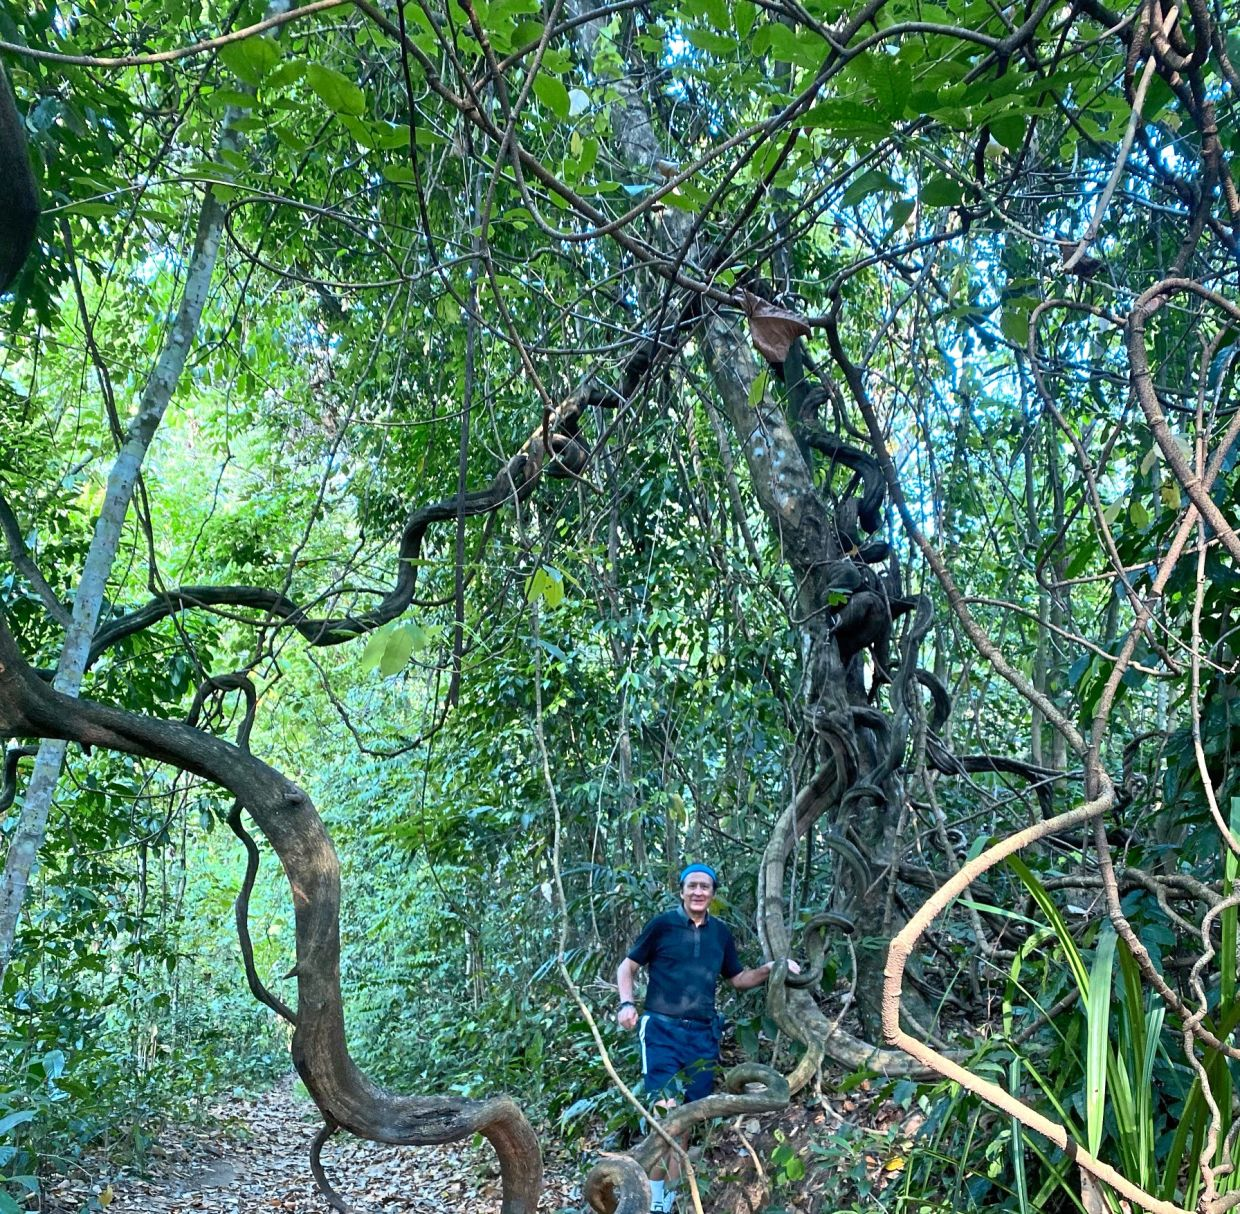 Bukit Kiara in Kuala Lumpur is a great place for folks who are looking for some physical challenge. — Photos: DR POLA SINGH